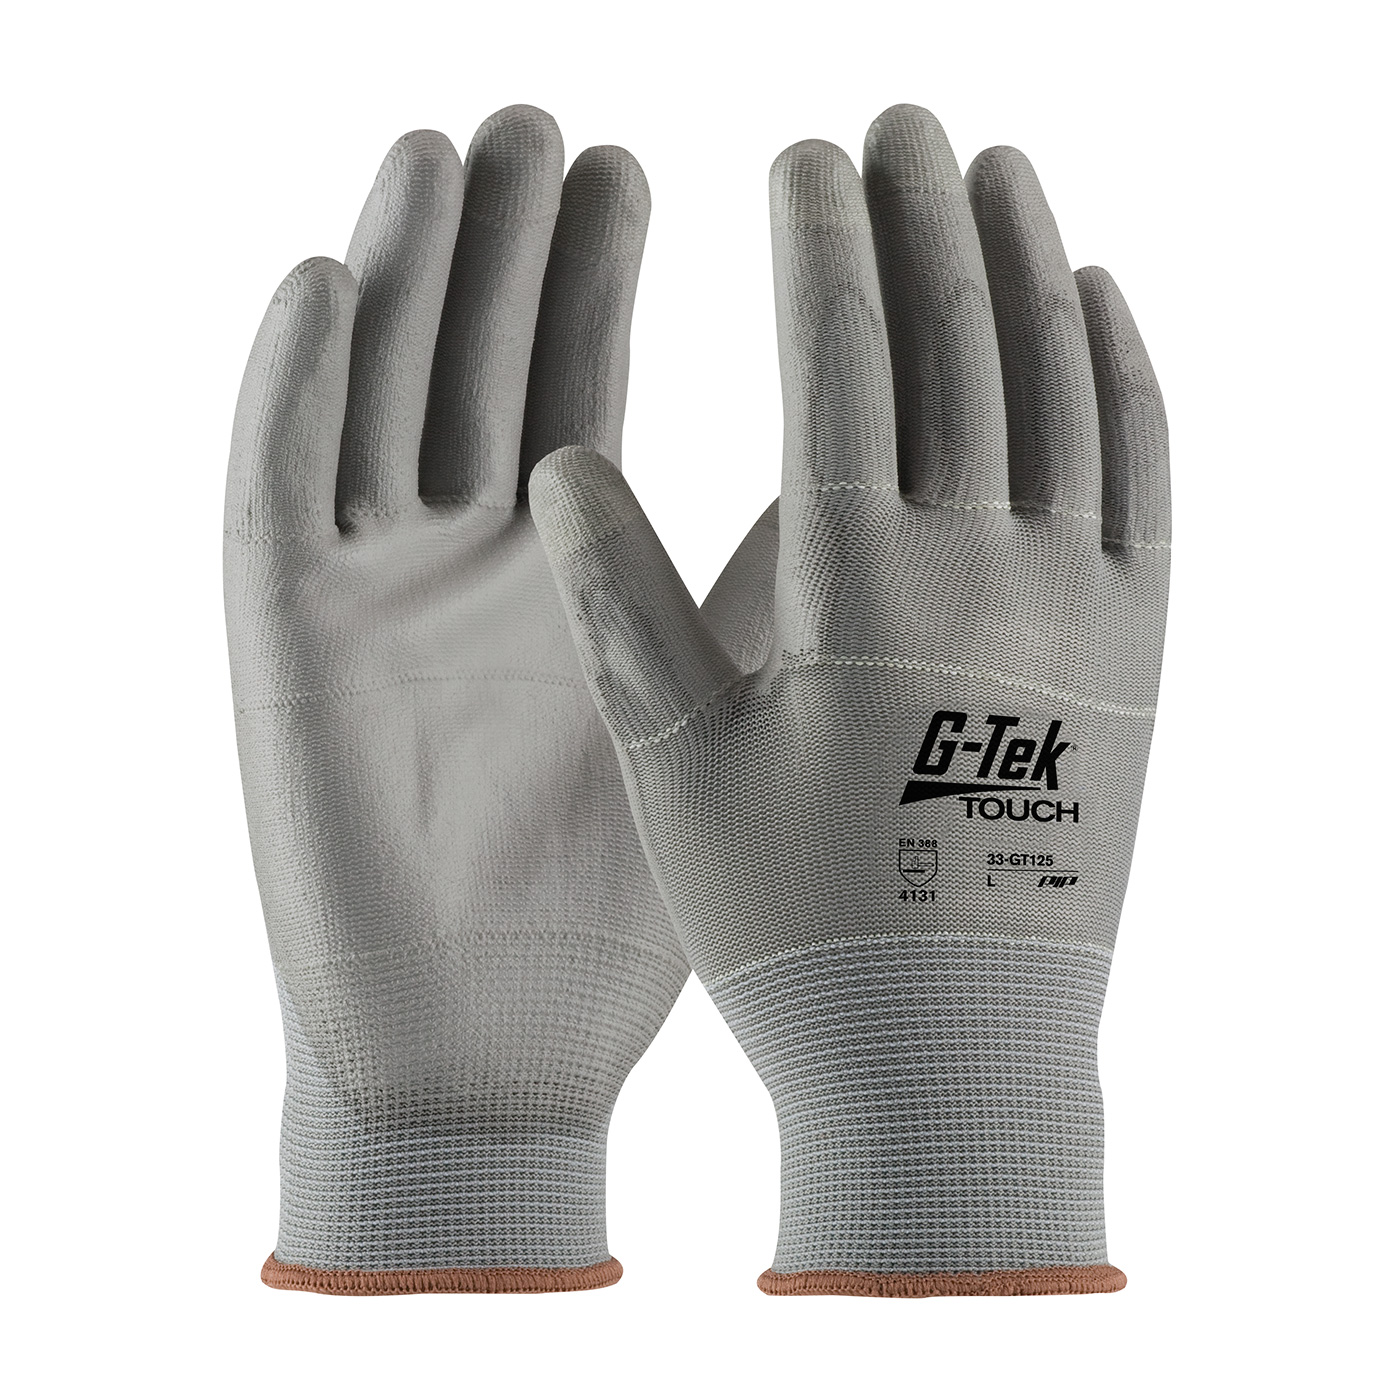 33-GT125 PIP® G-Tek® Touch Screen Compatible PU Coated General Duty Work Gloves